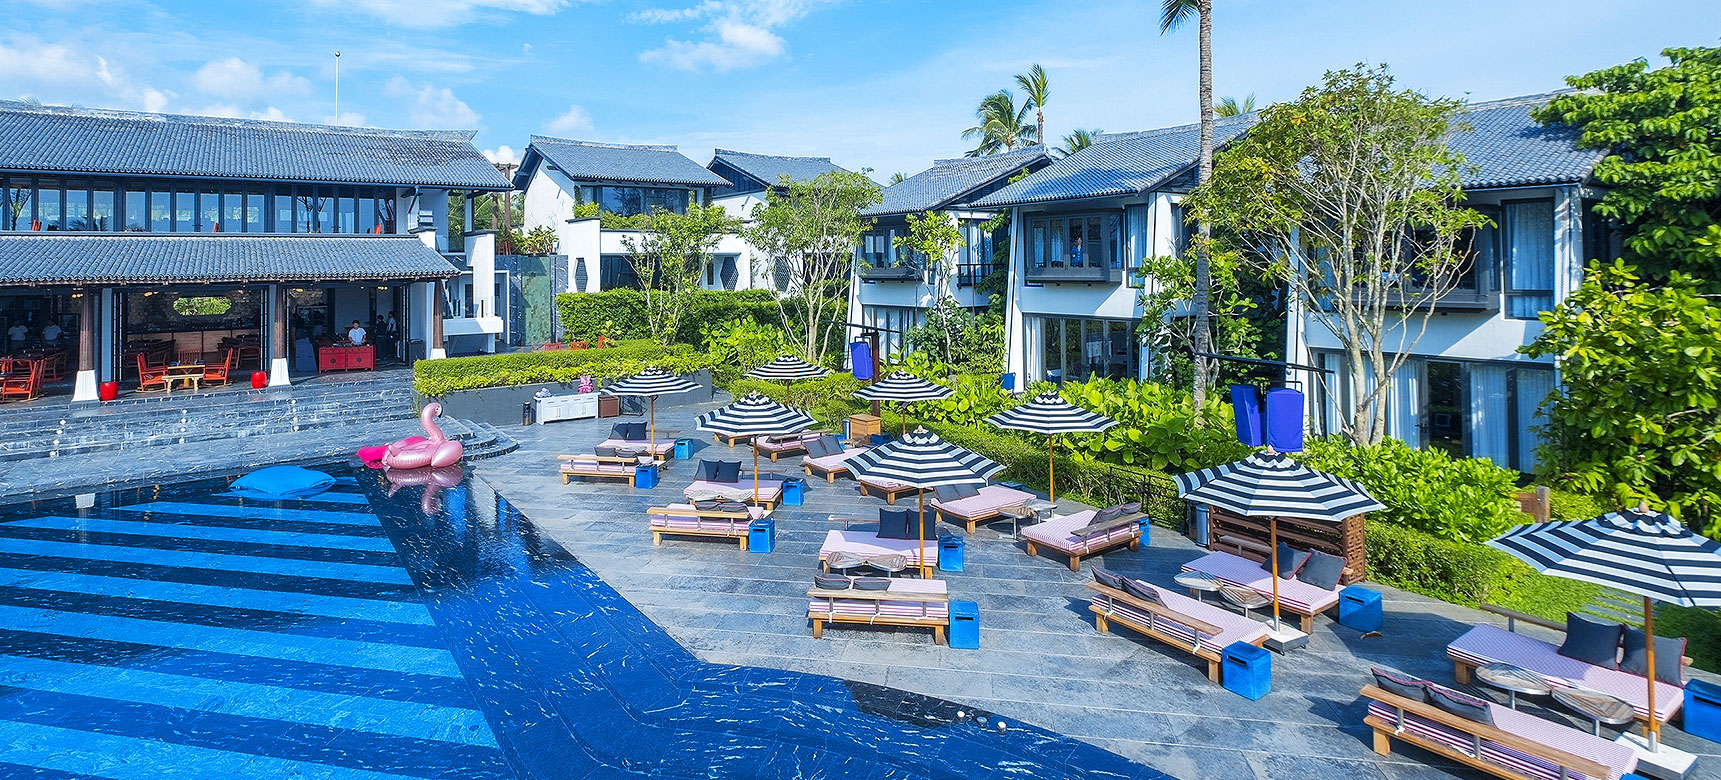 7-Facilities-Baba-Beach-Club-Luxury-Hotel-Phuket-by-Sri-Panwa